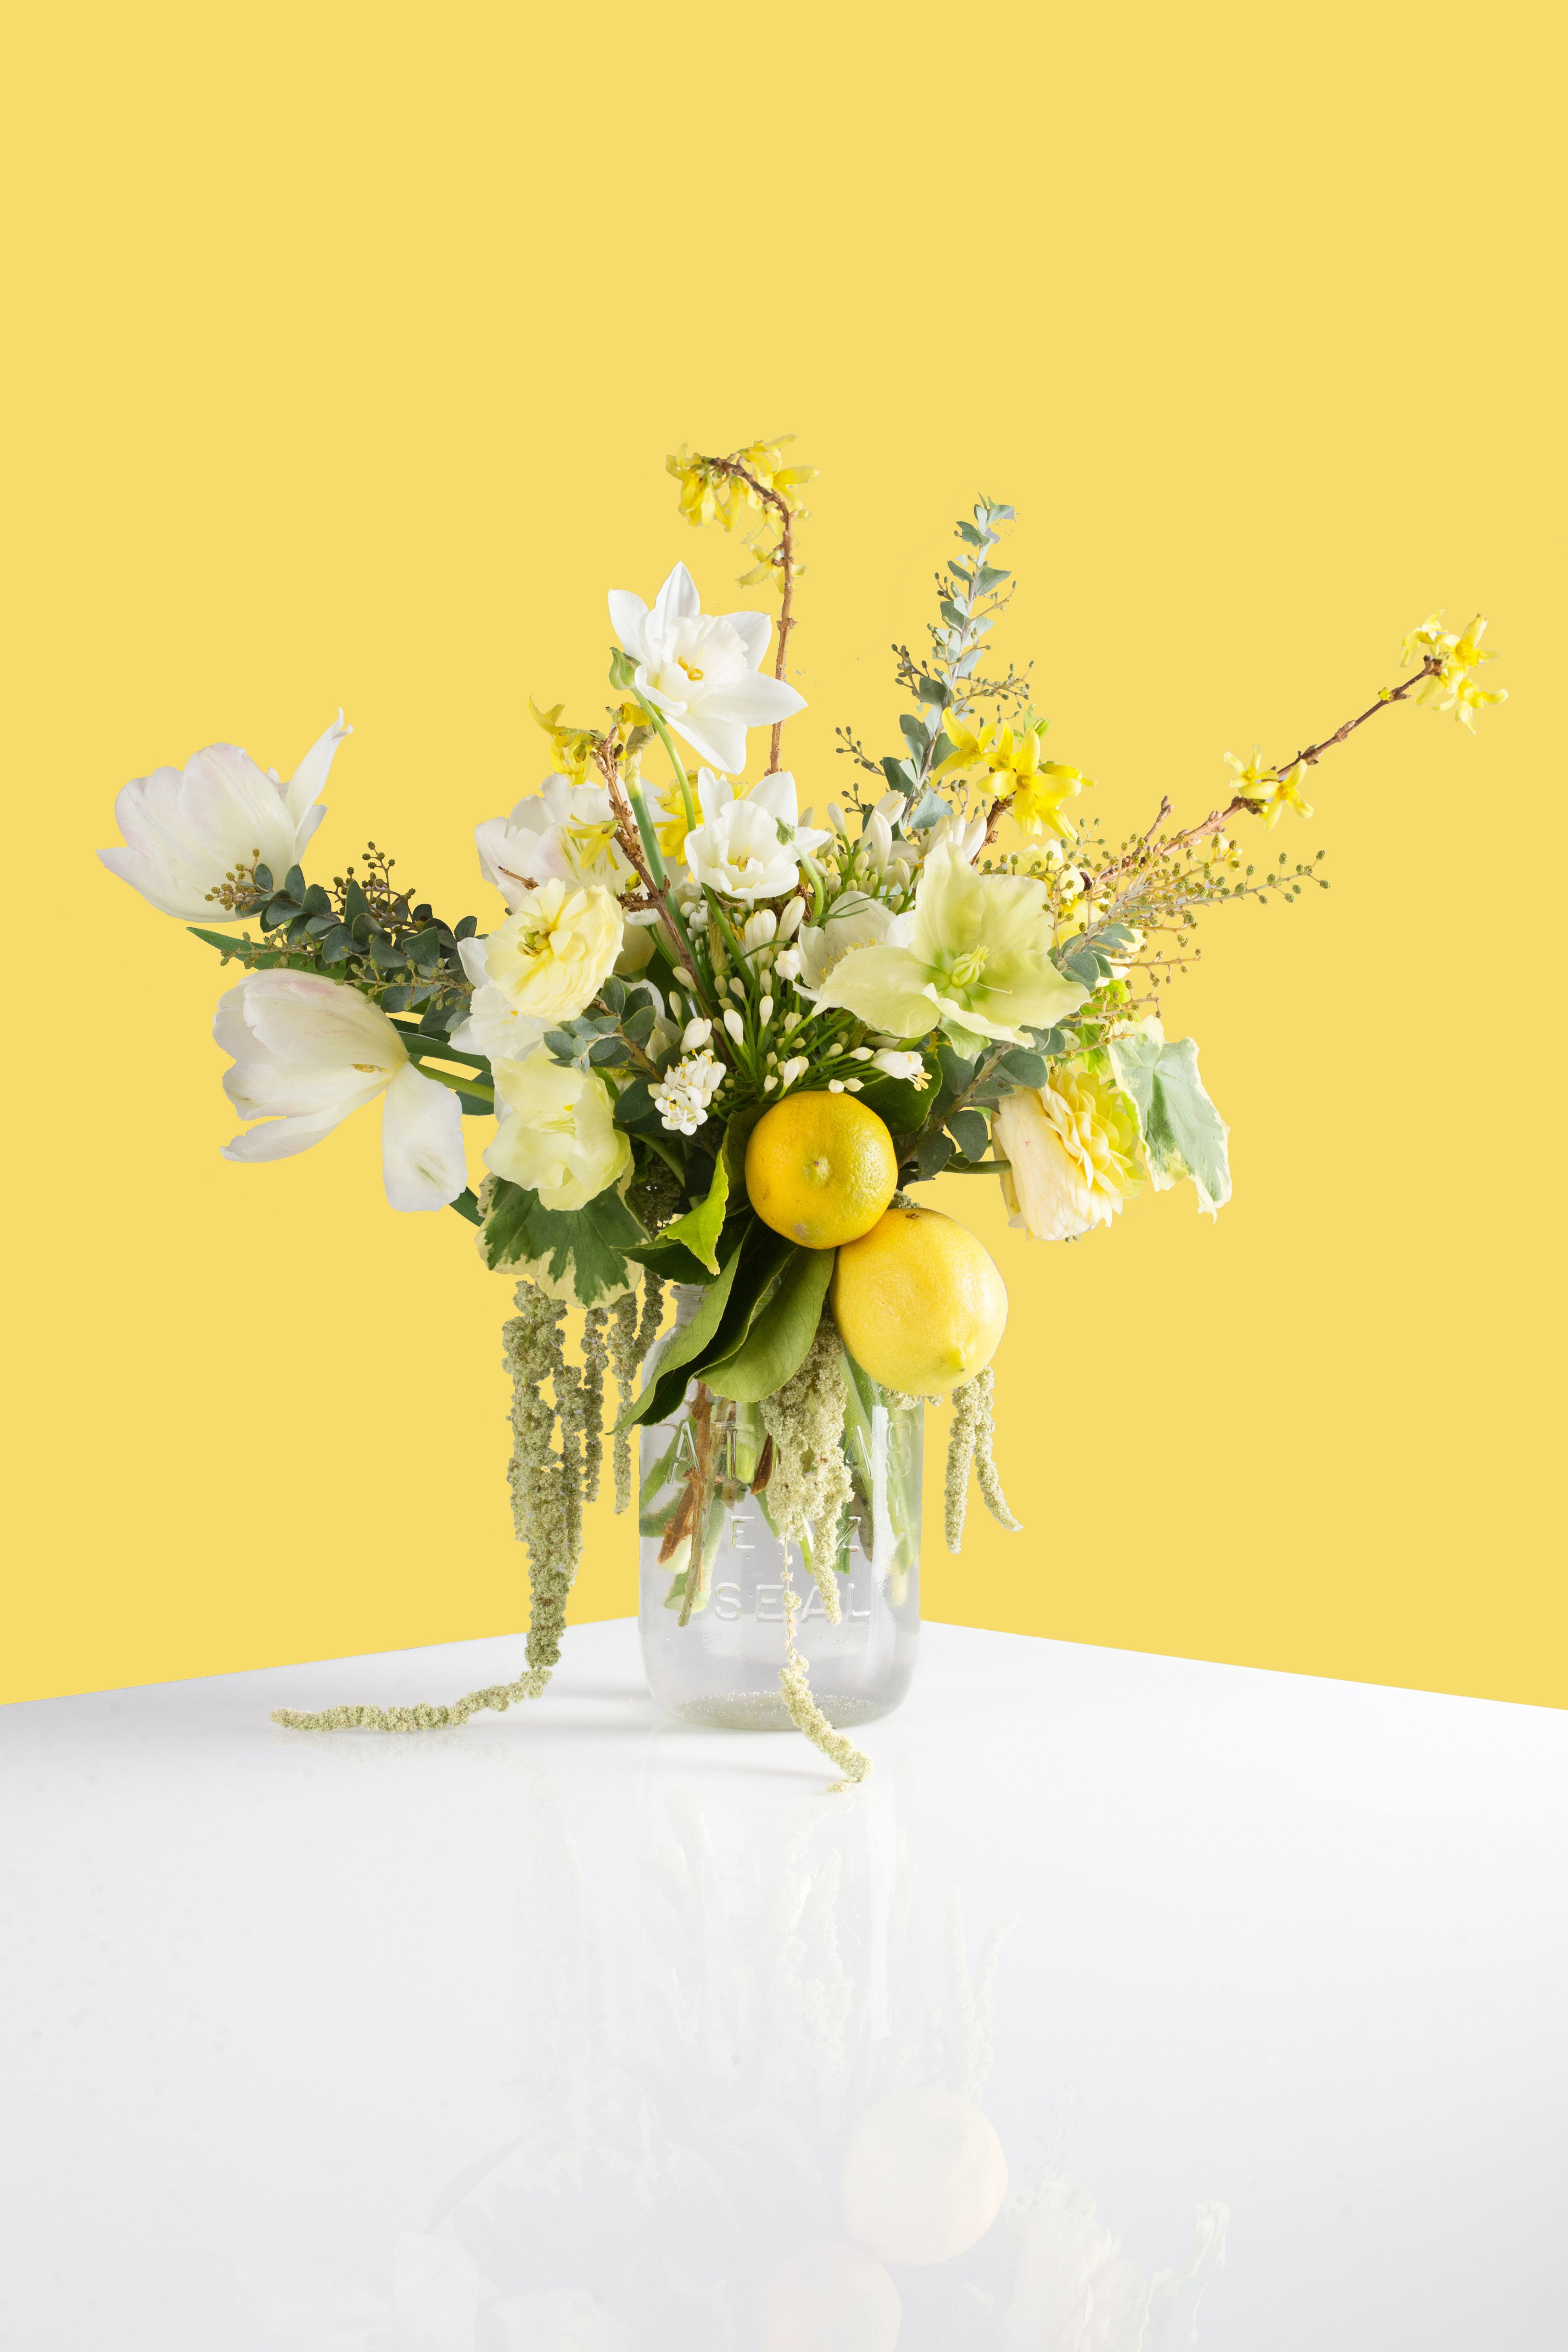 <p>Refreshingly unpretentious, this arrangement is composed of earth's greatest healing agents: lemons, allium (onion), and geranium, all in a vintage ball jar that looks like it's been nabbed from your grandmother's kitchen. </p> <p><em>Materials: Tulips, Daffodils, Ranunculus, Acacia, Hellbores (Winter Rose), Forsythia, Agapanthus, Allium, Geranium, Amaranth</em></p> <p><em>Retails at $150.</em></p>